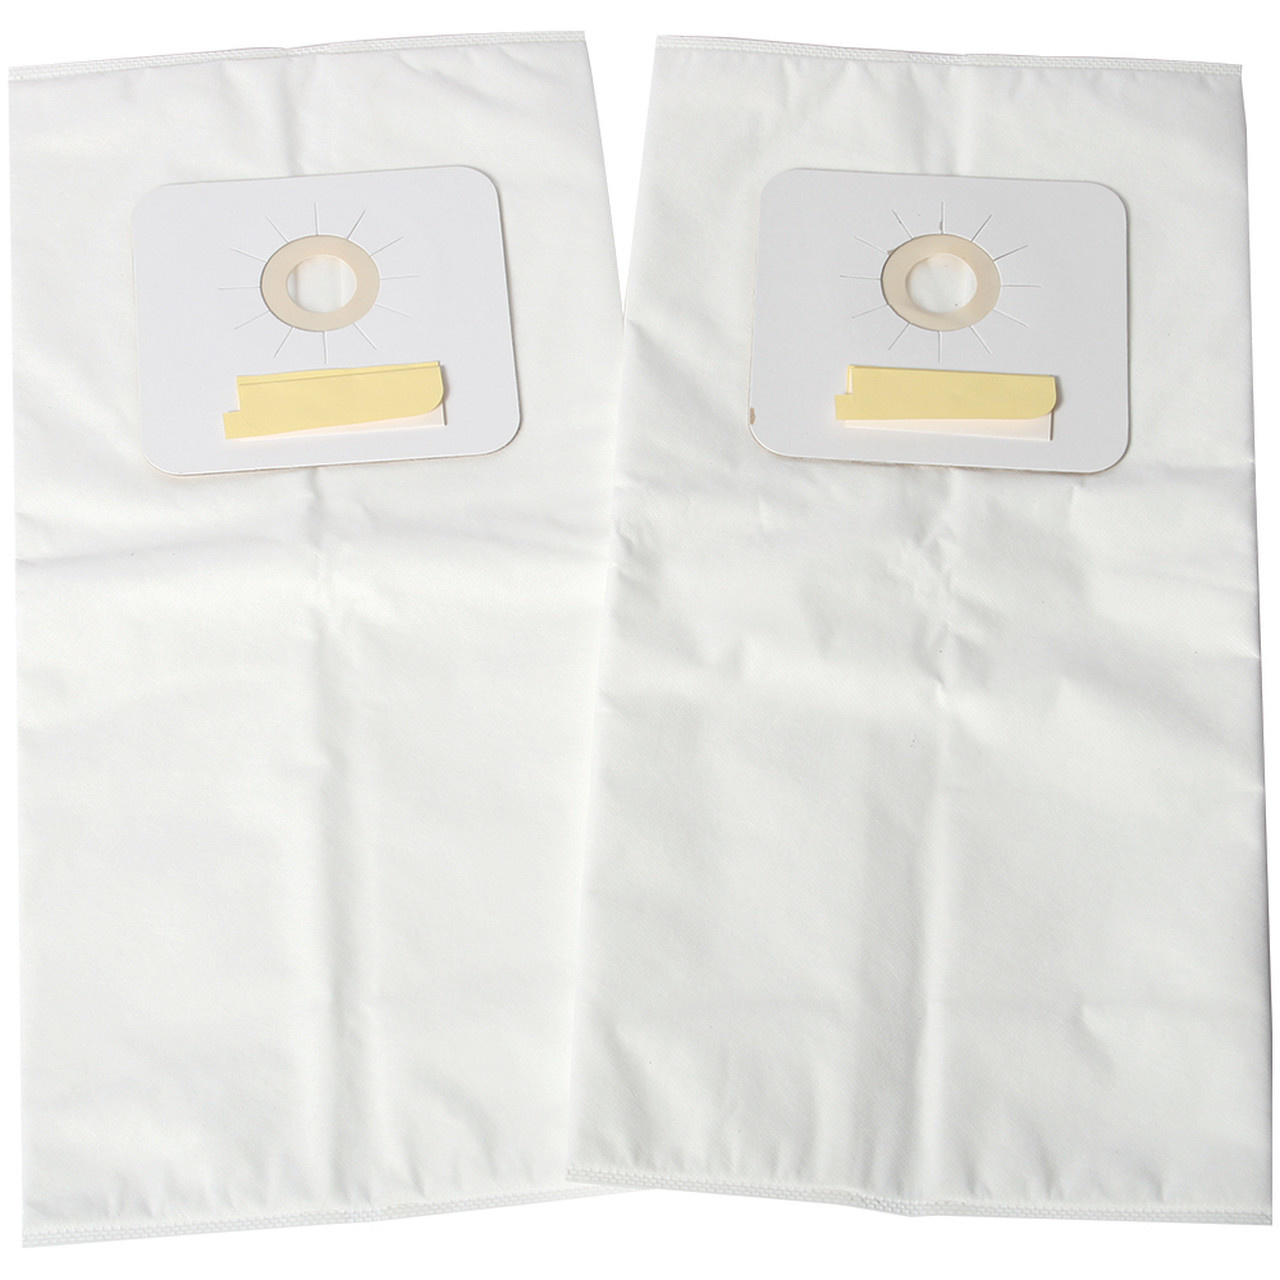 Centec Cen-Tec HEPA Central 2-Pack Vacuum Bags for Cyclovac & CV